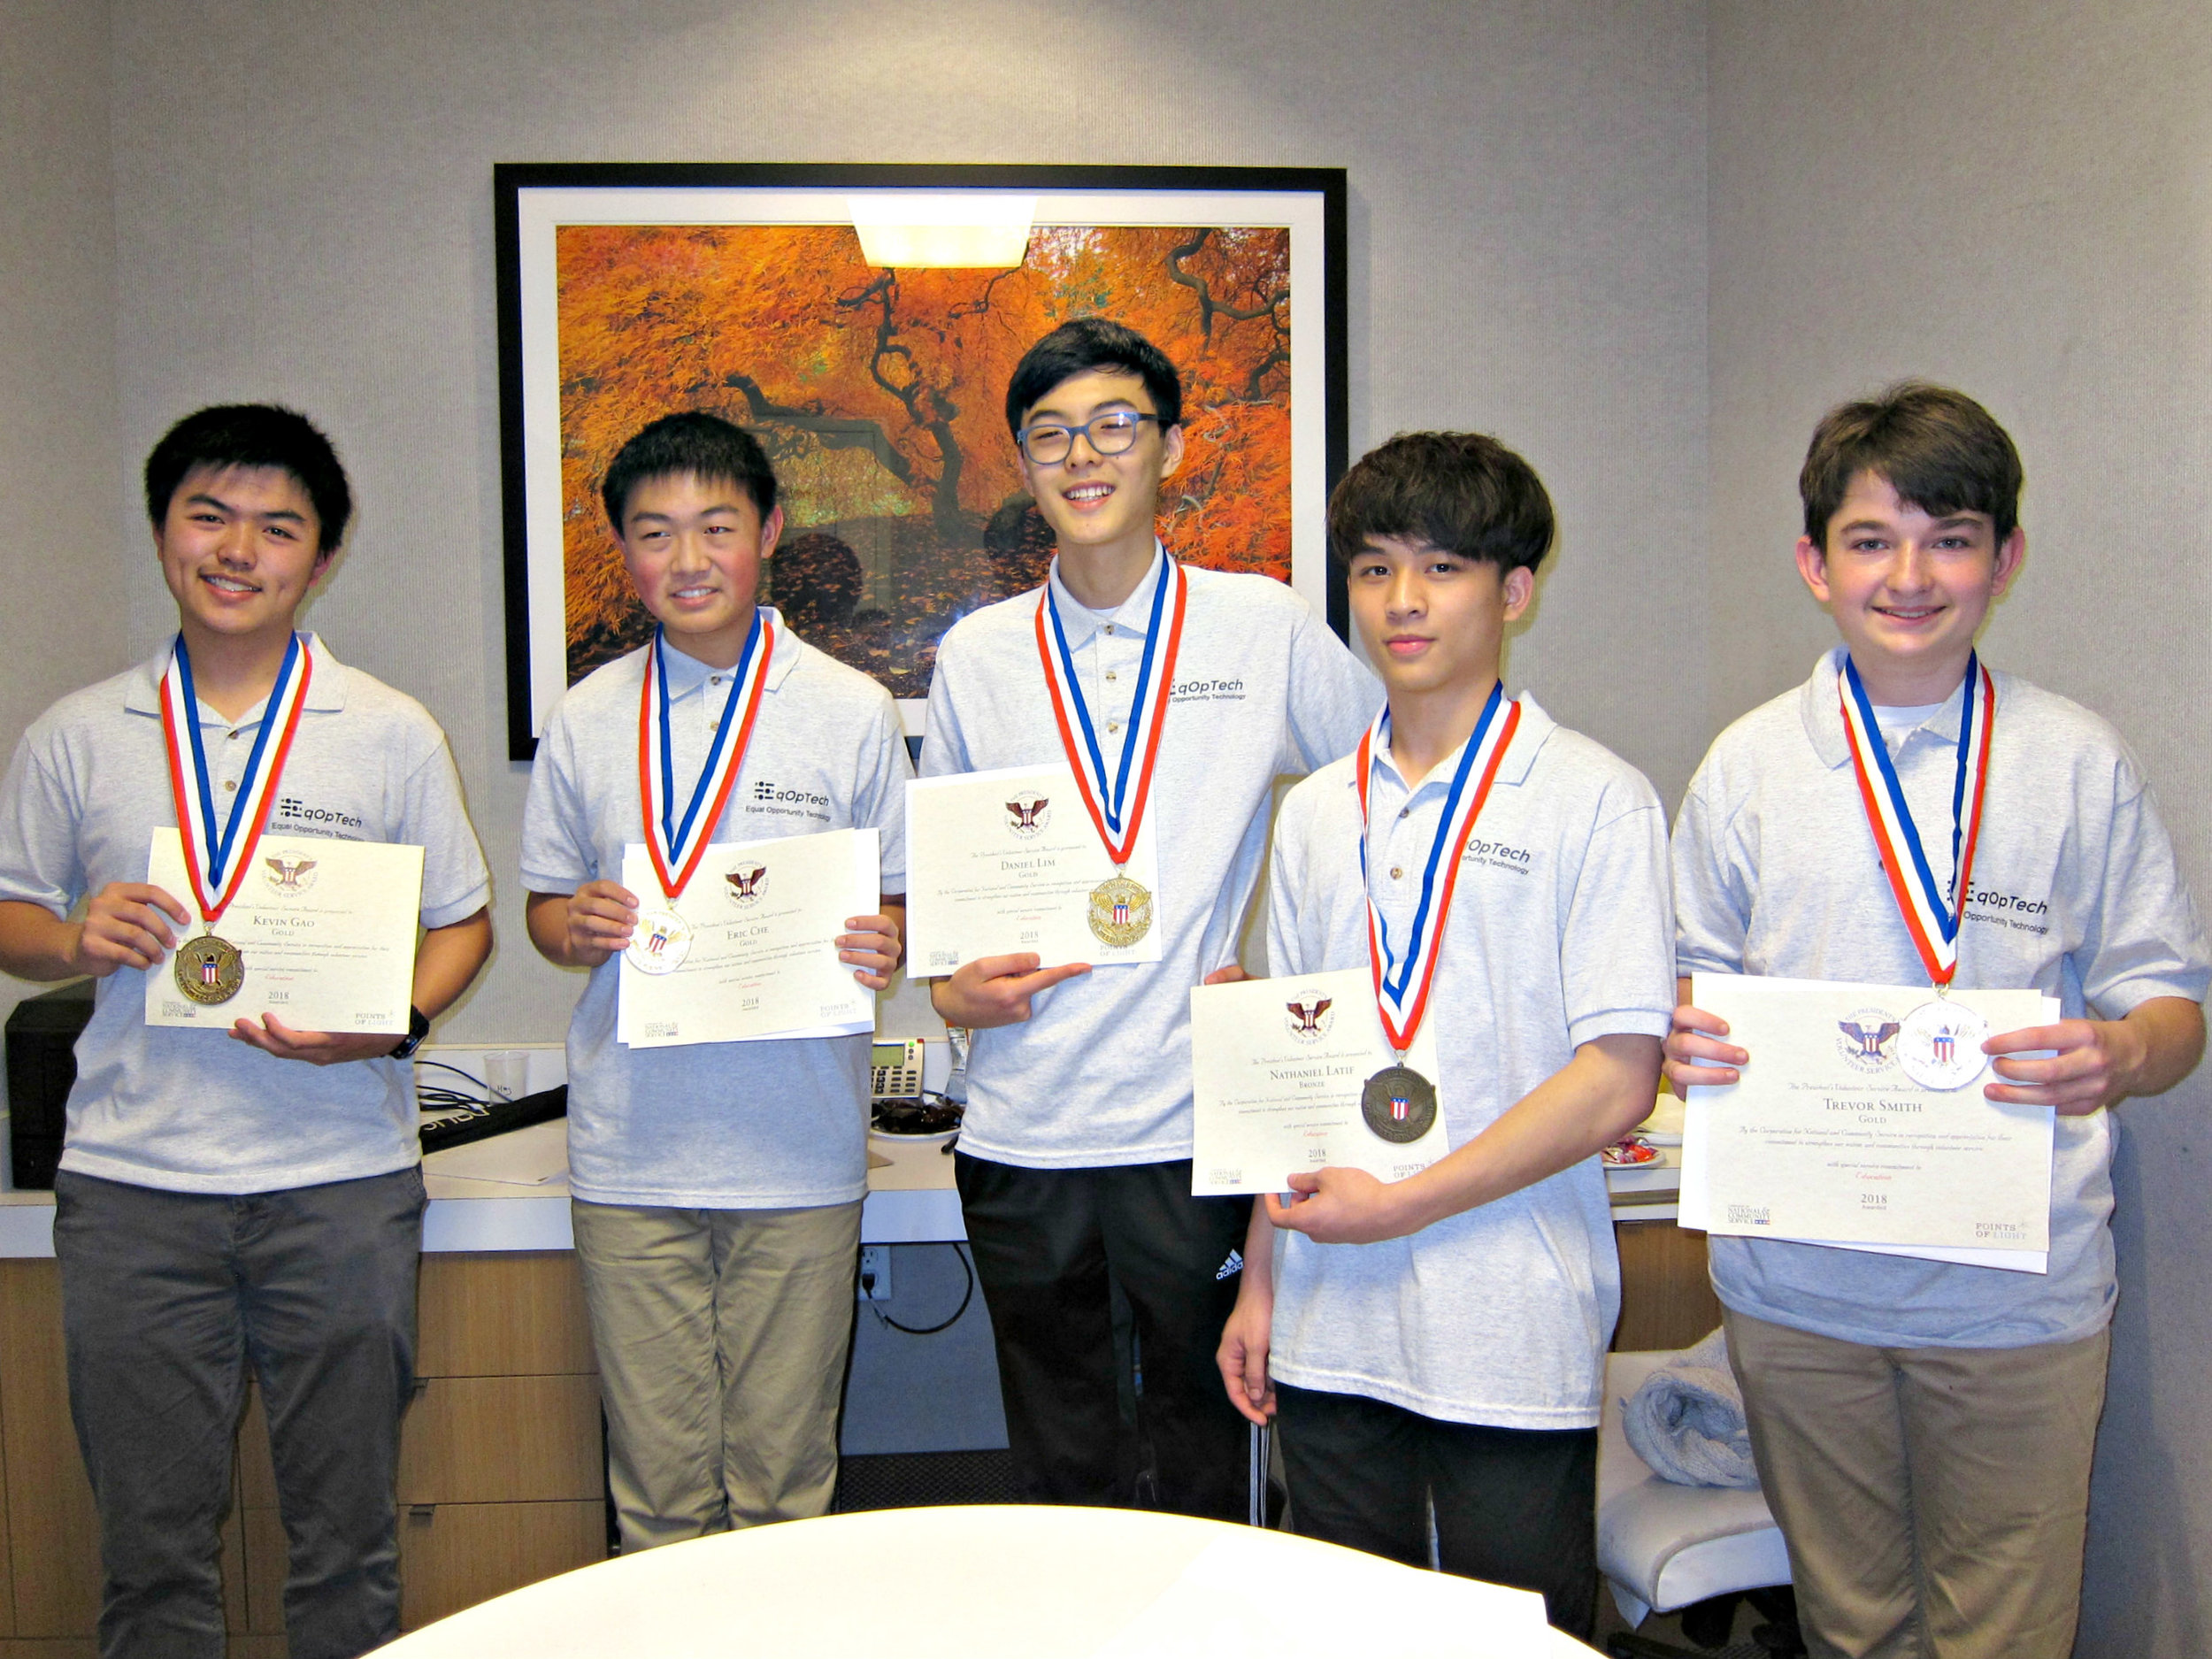 Kevin Gao, Eric Che, Daniel Lim, Nate Latif, Trevor Smith (left to right) - 2018 President's Volunteer Service Award medalists